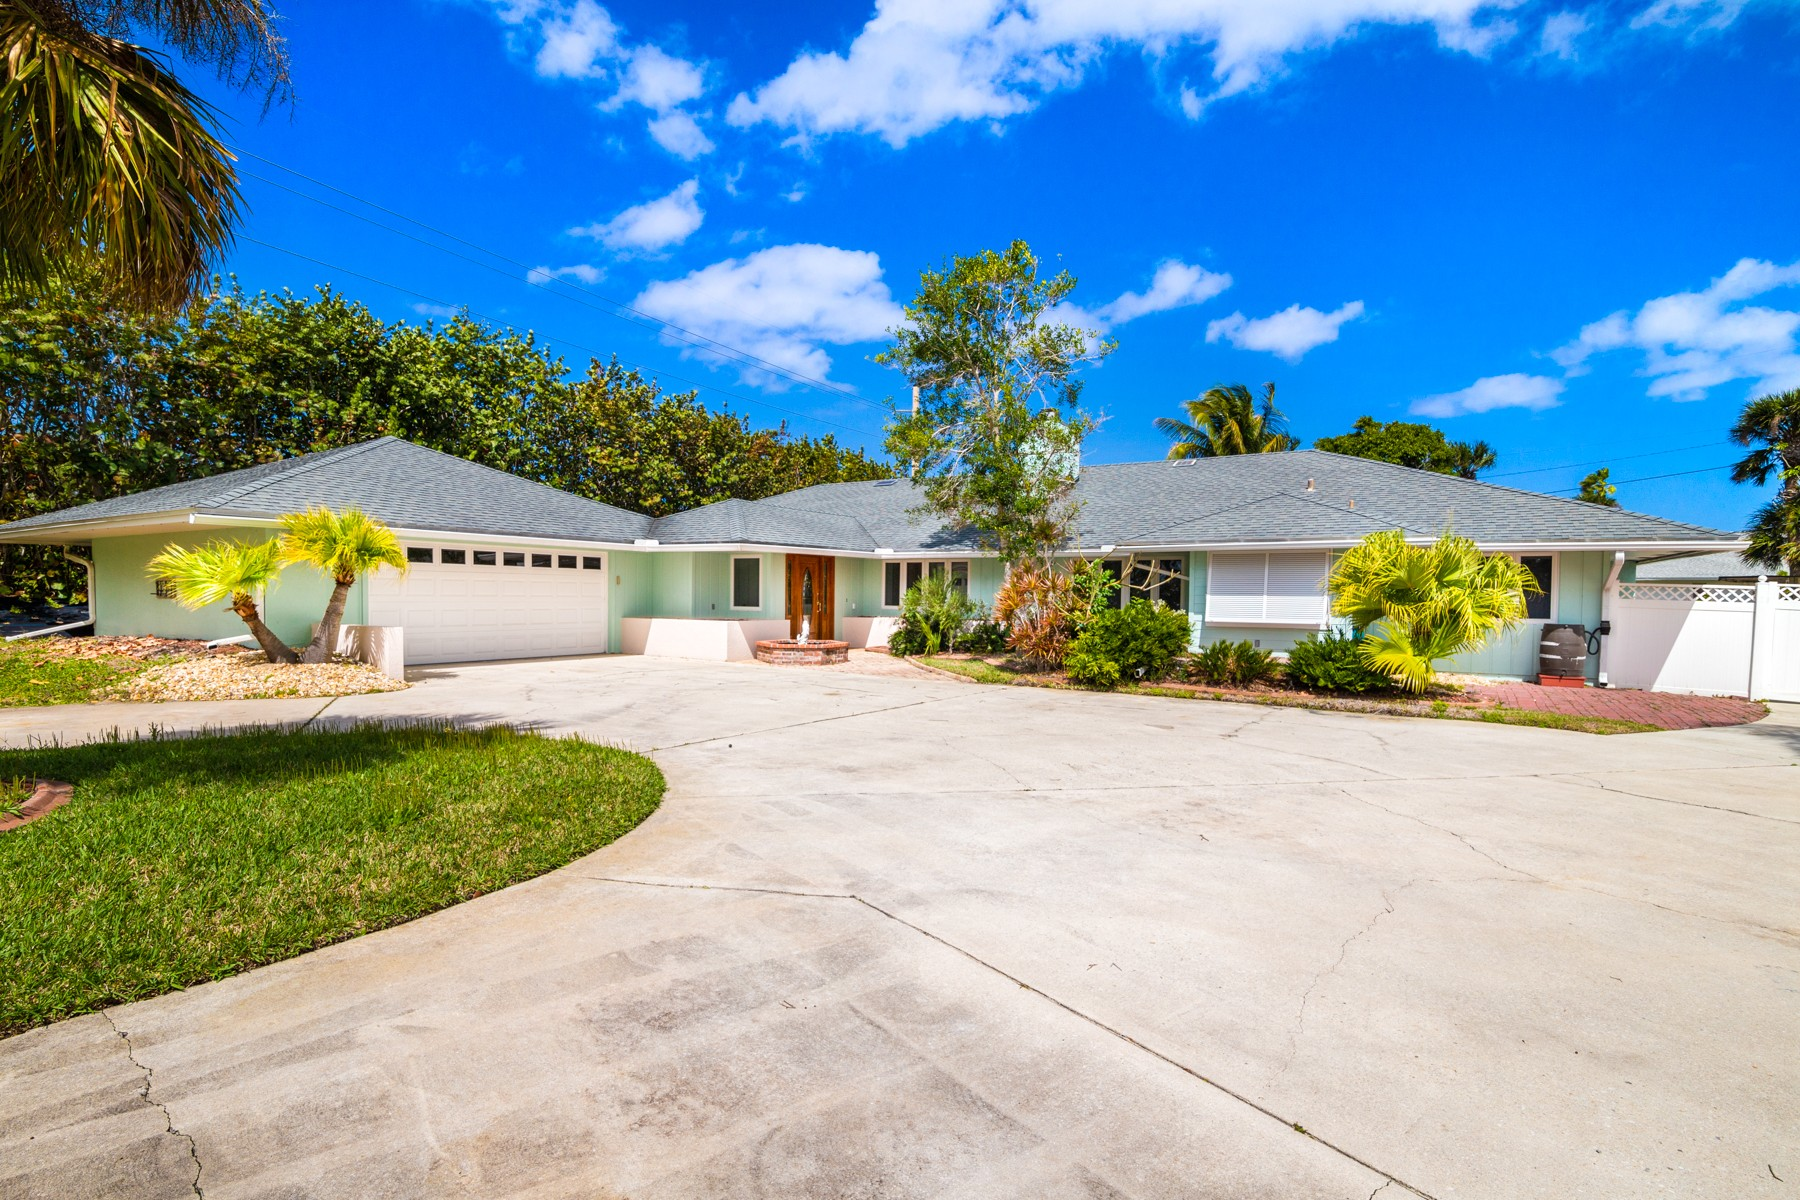 Beautifully Updated Home with Sparkling Pool & Summer Kitchen. 298 Coral Way W Indialantic, Florida 32903 Estados Unidos